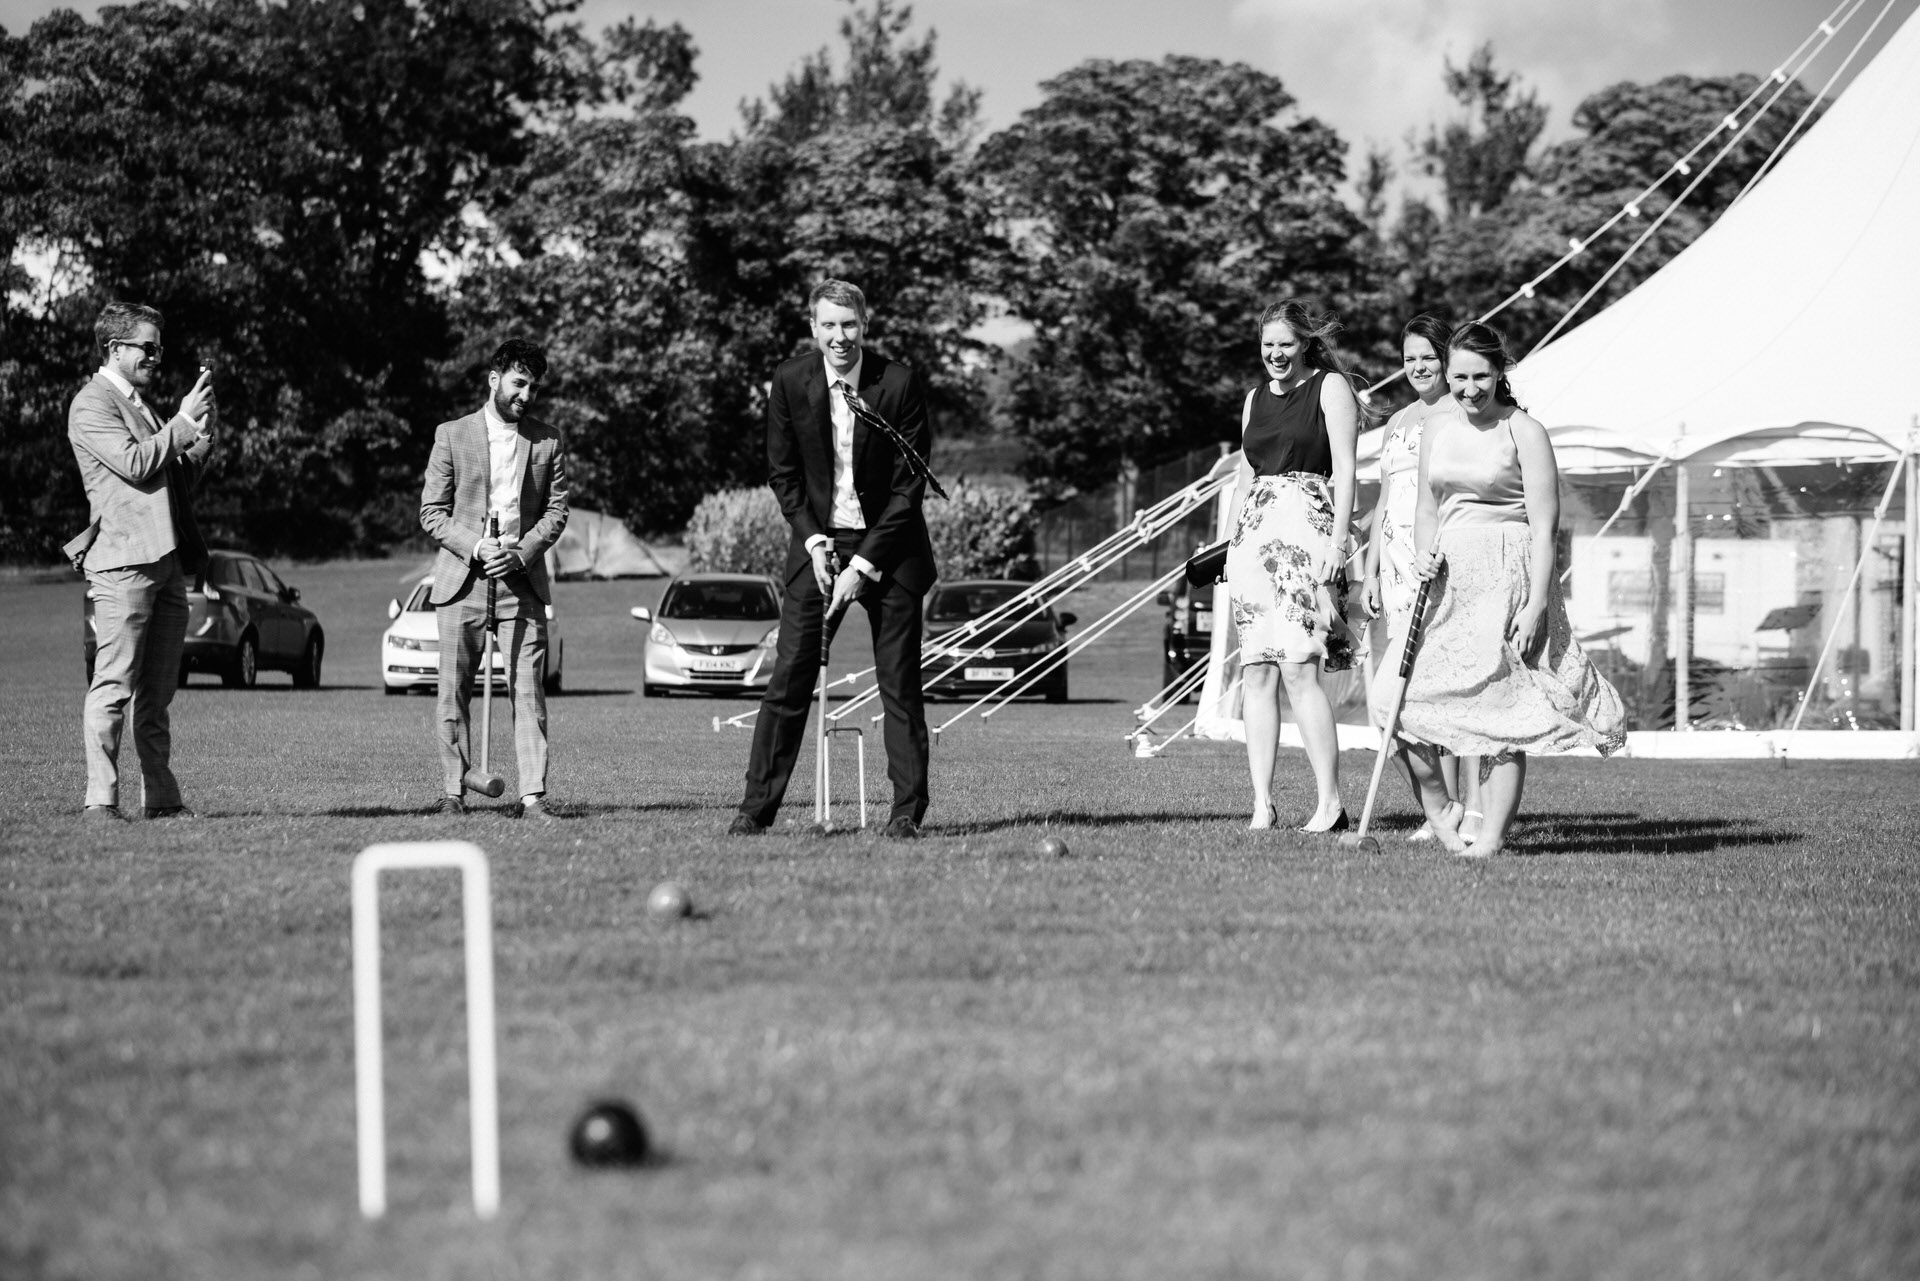 croquet on the field at crayke sports club